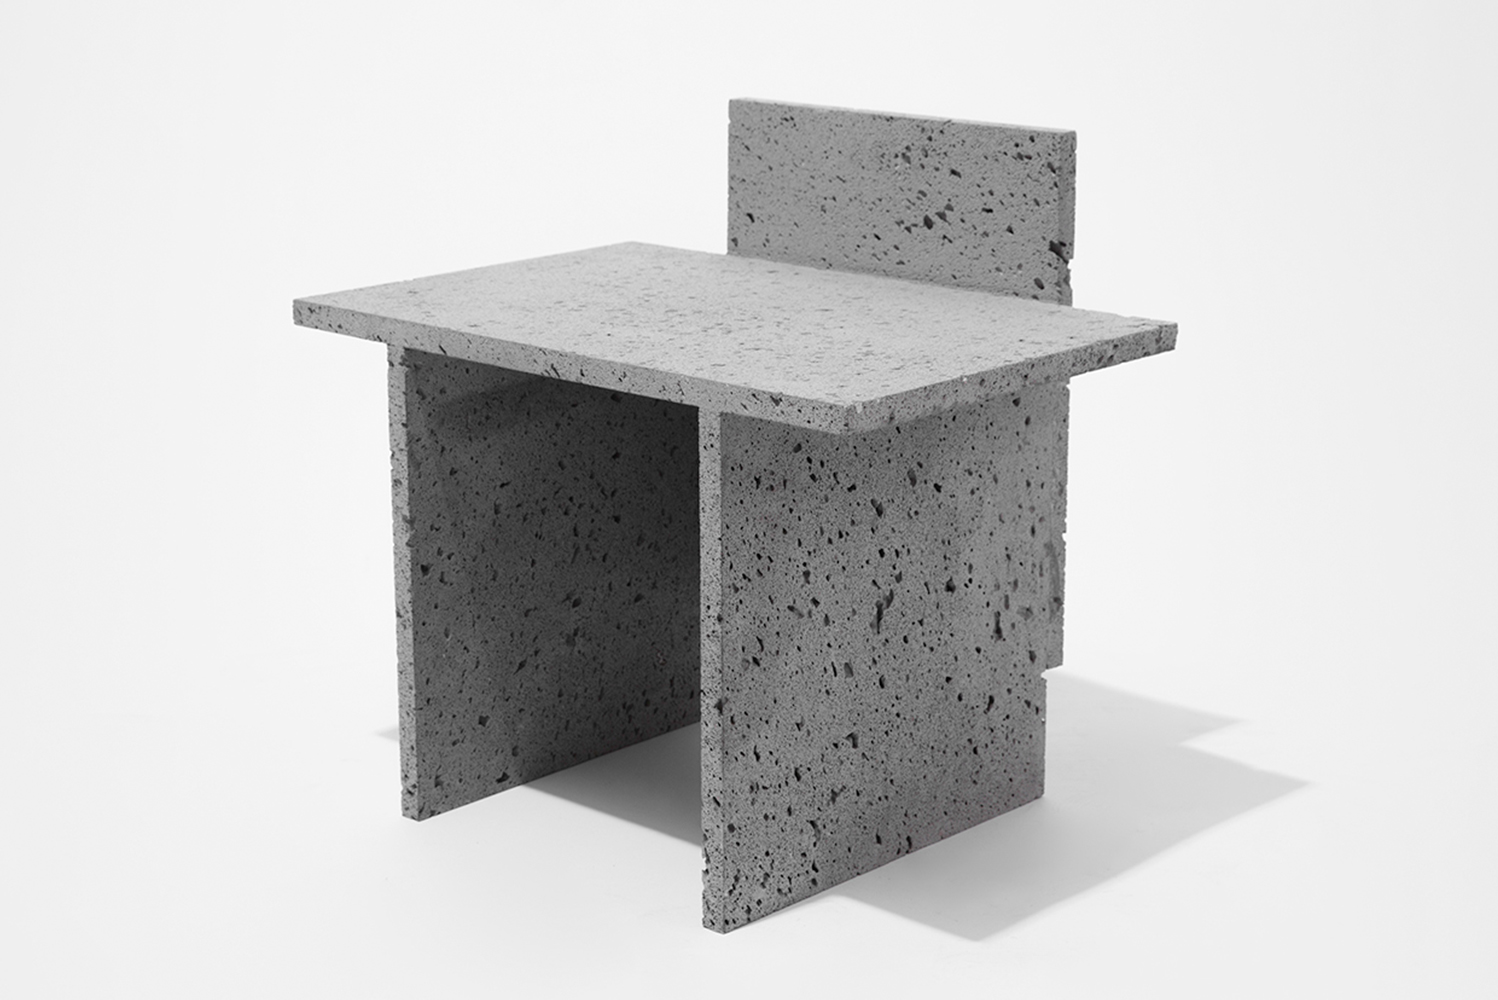 The series includes furniture products designed by Más, a studio specializing in products made of concrete.